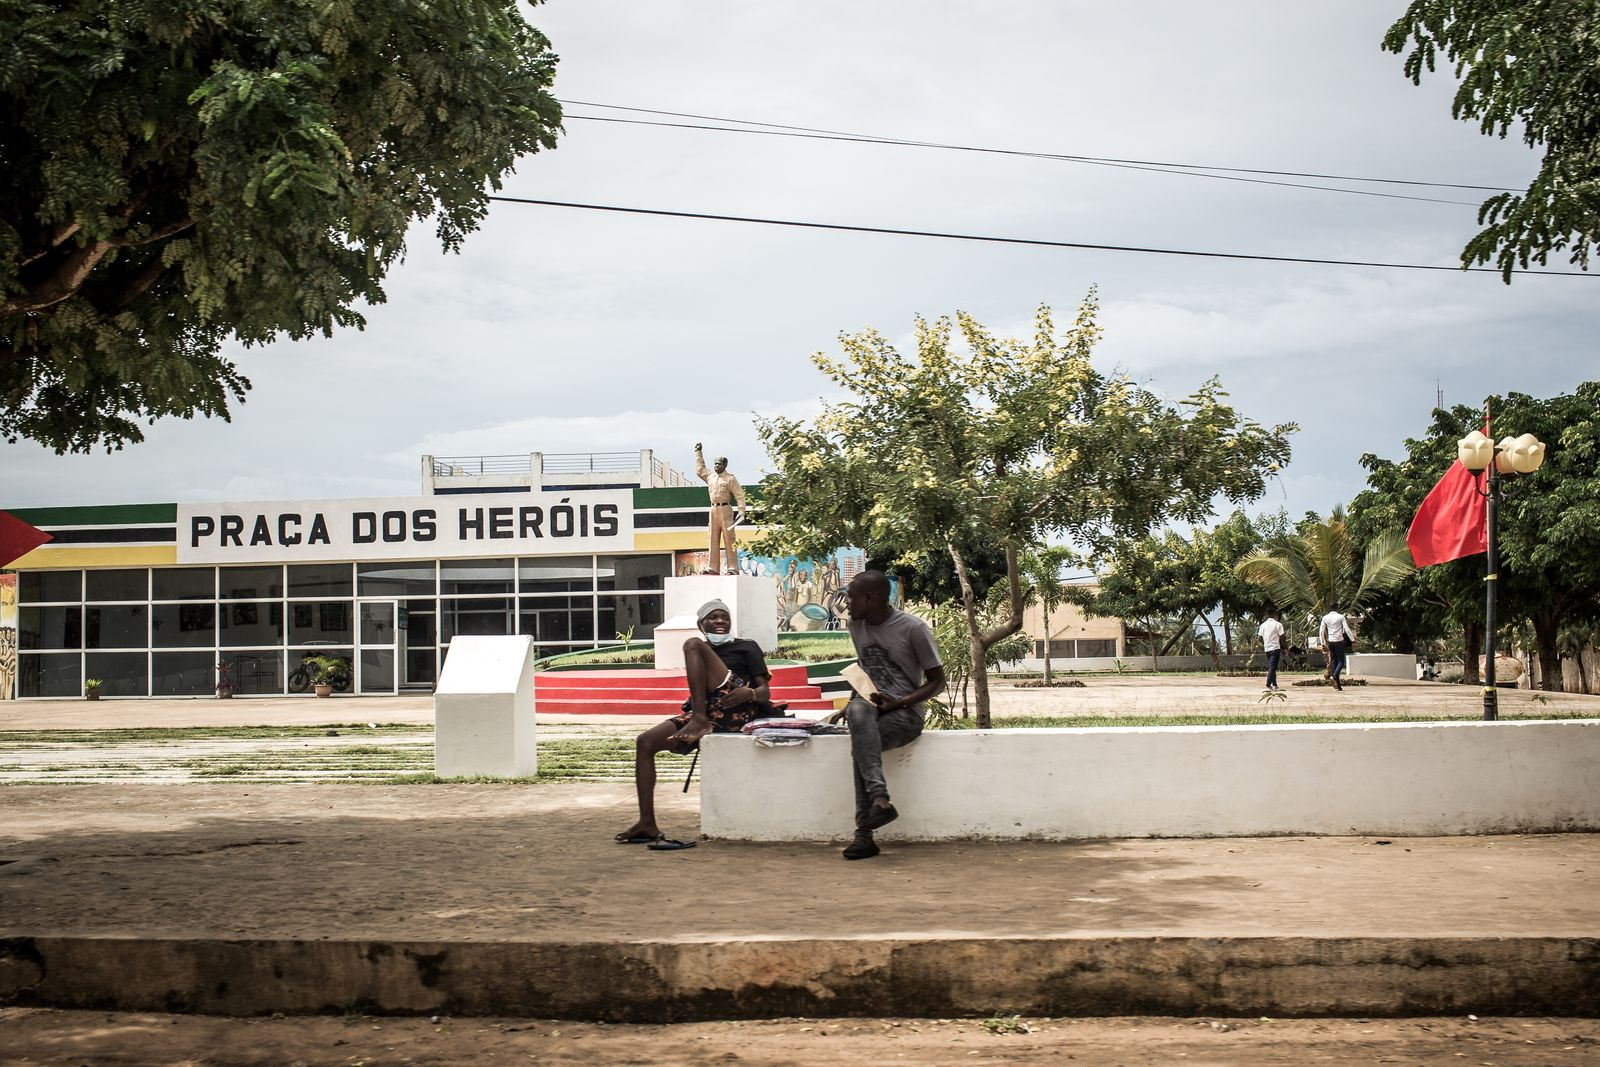 CWerner_Mozambique-232